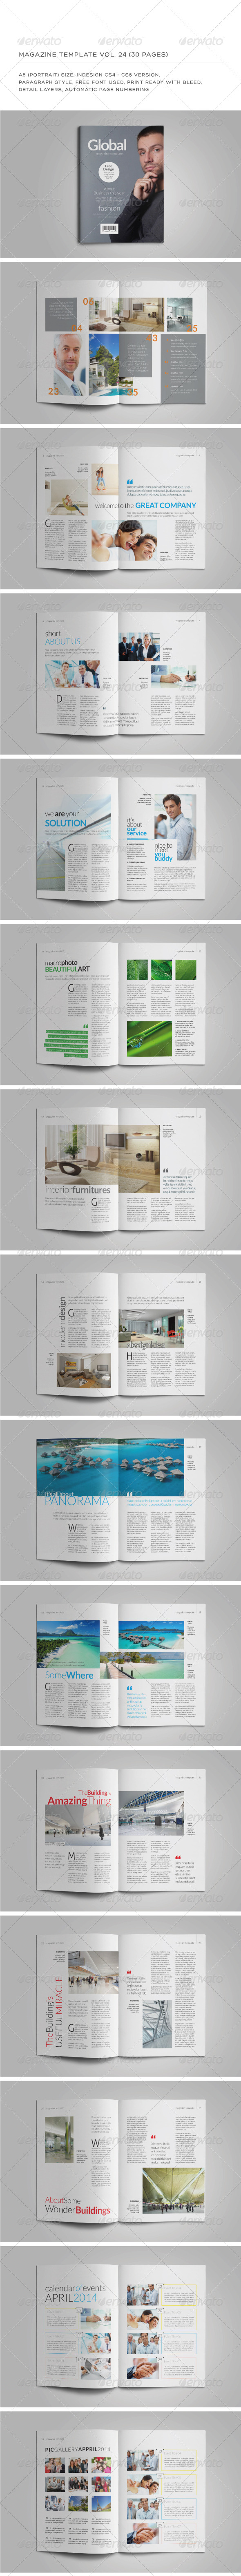 A5 Portrait 30 Pages MGZ (Vol. 24) - Magazines Print Templates